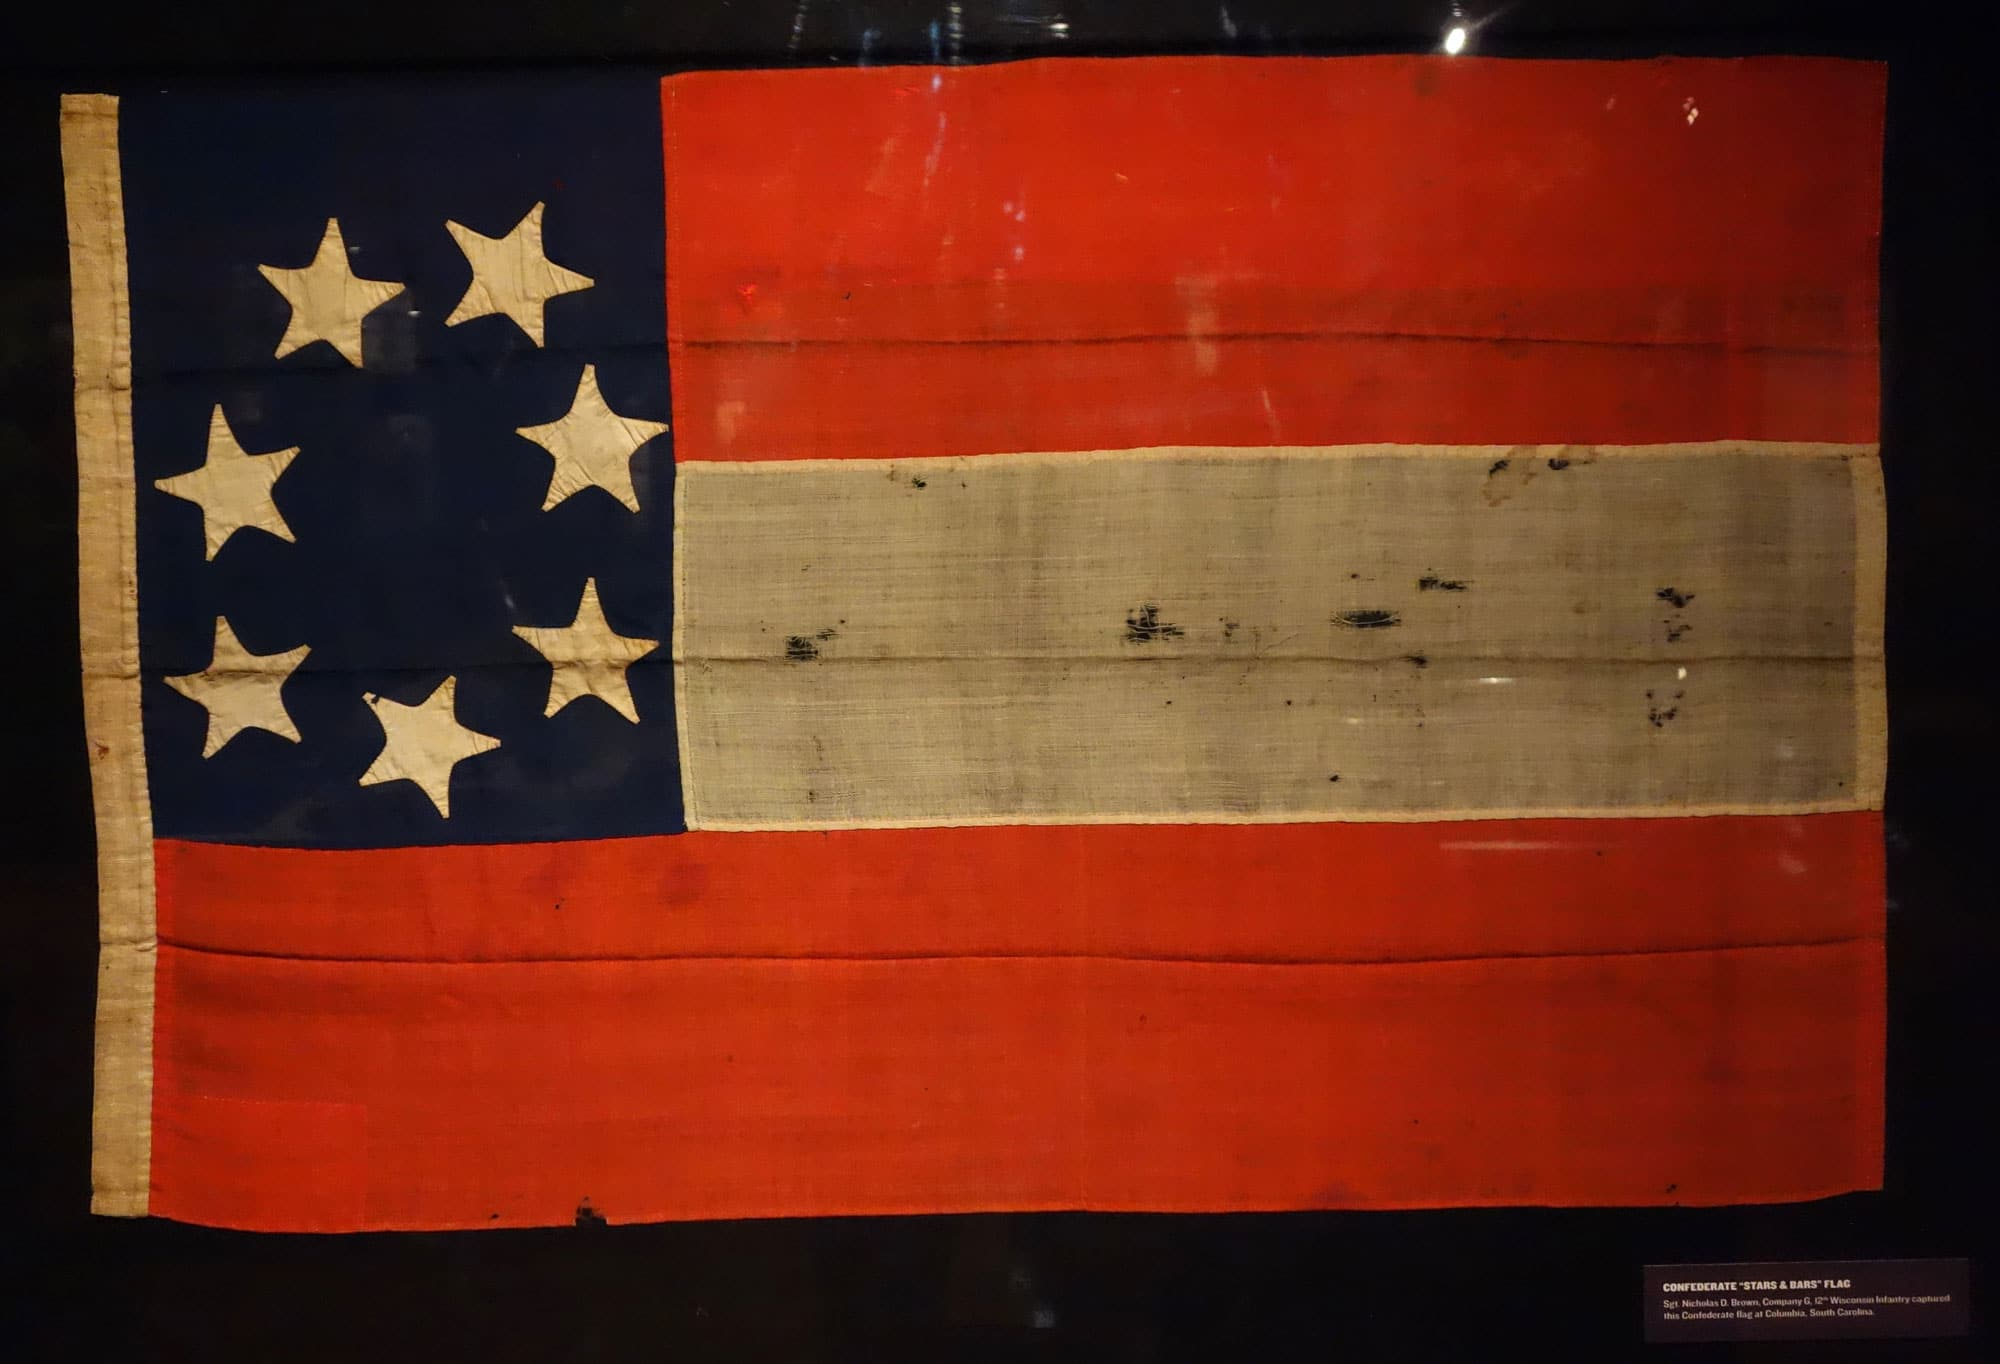 A Confederate Stars and Bars flag, captured by soldiers of the Union Army at Columbia, South Carolina.